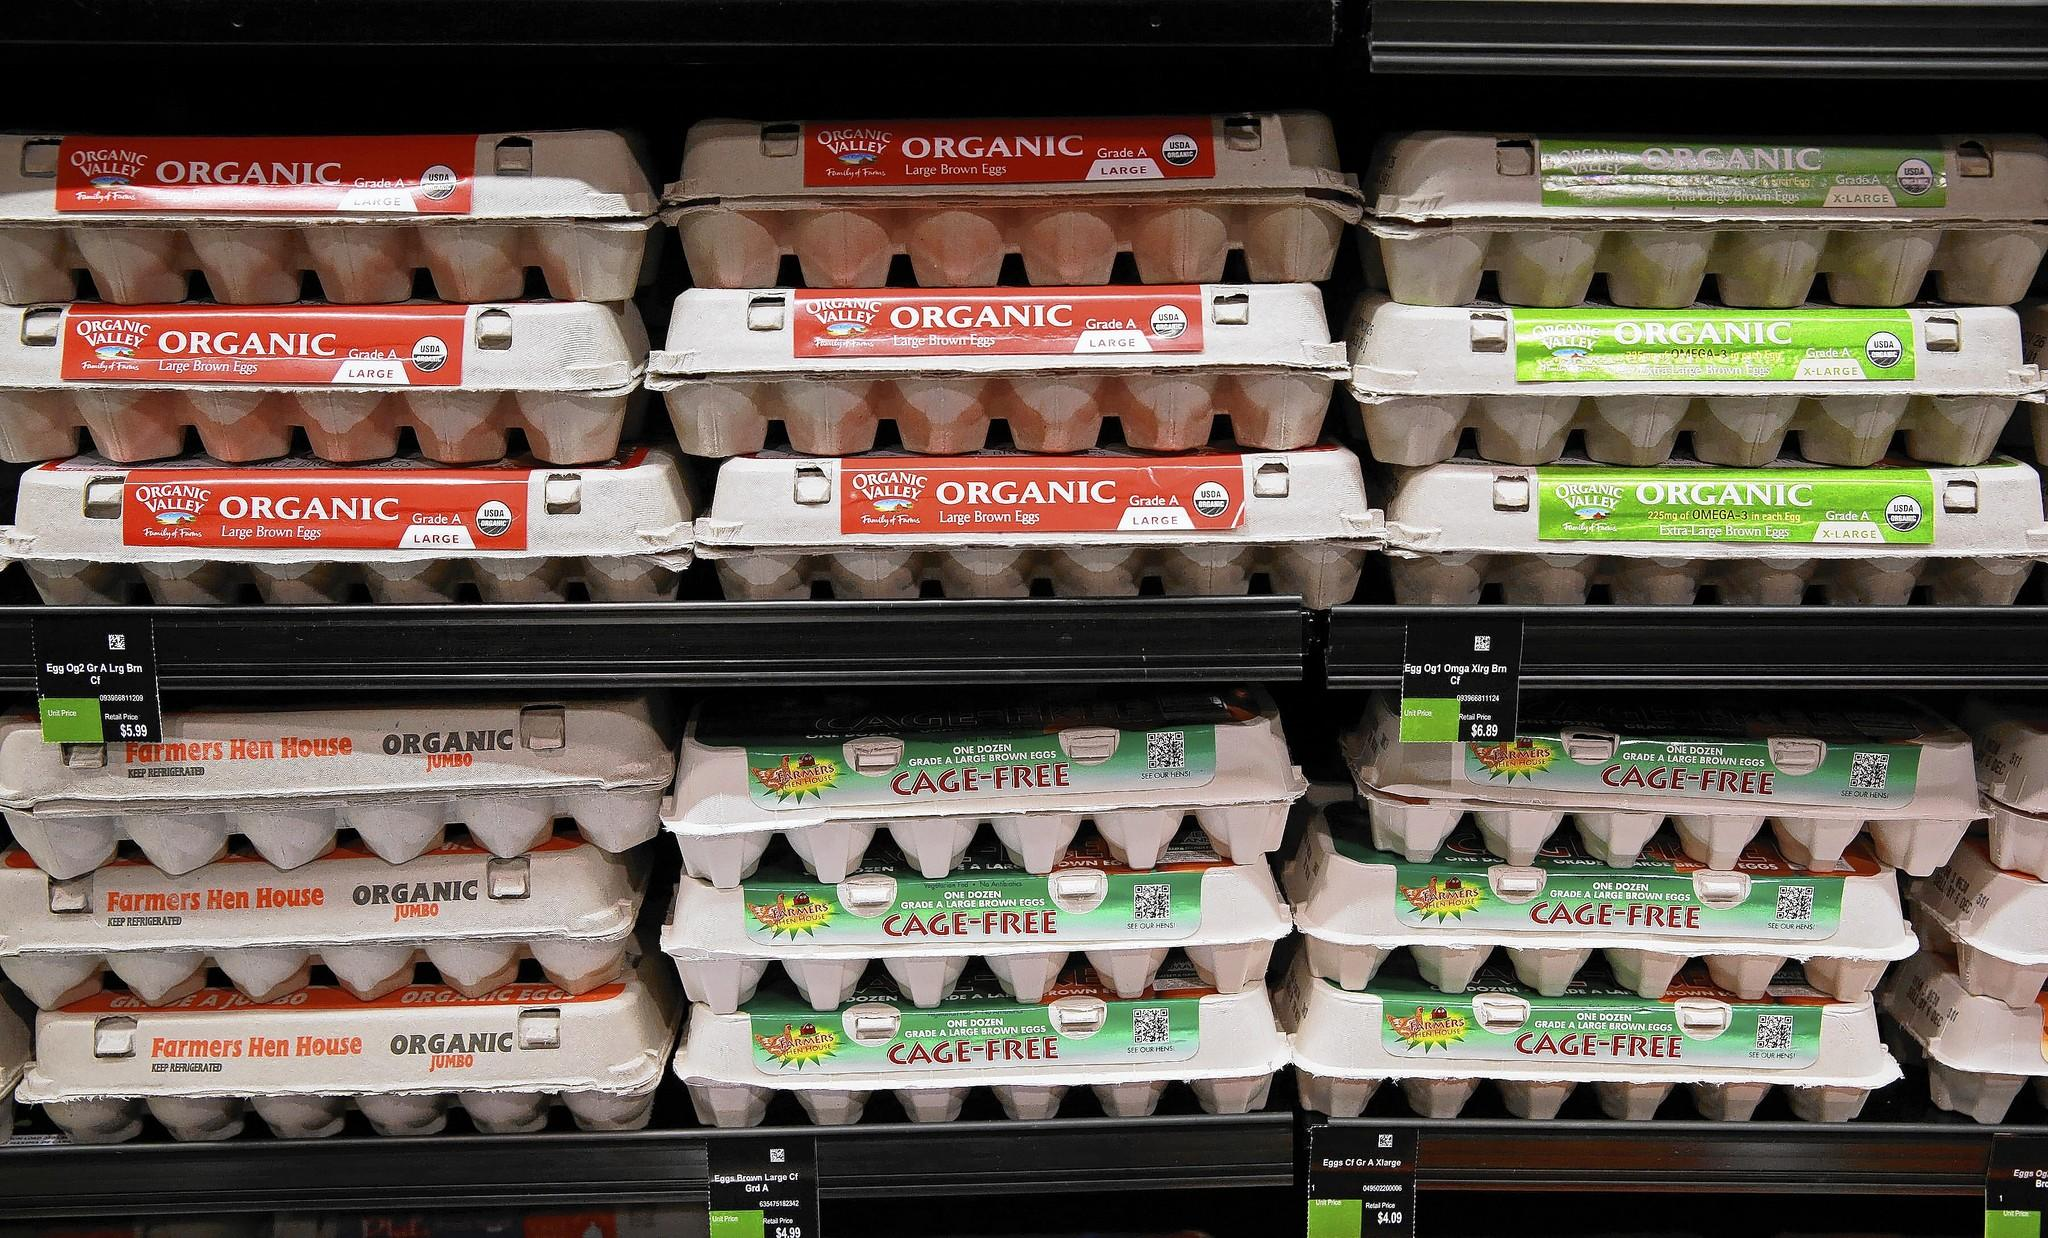 Organic and cage-free eggs are on display shelves.